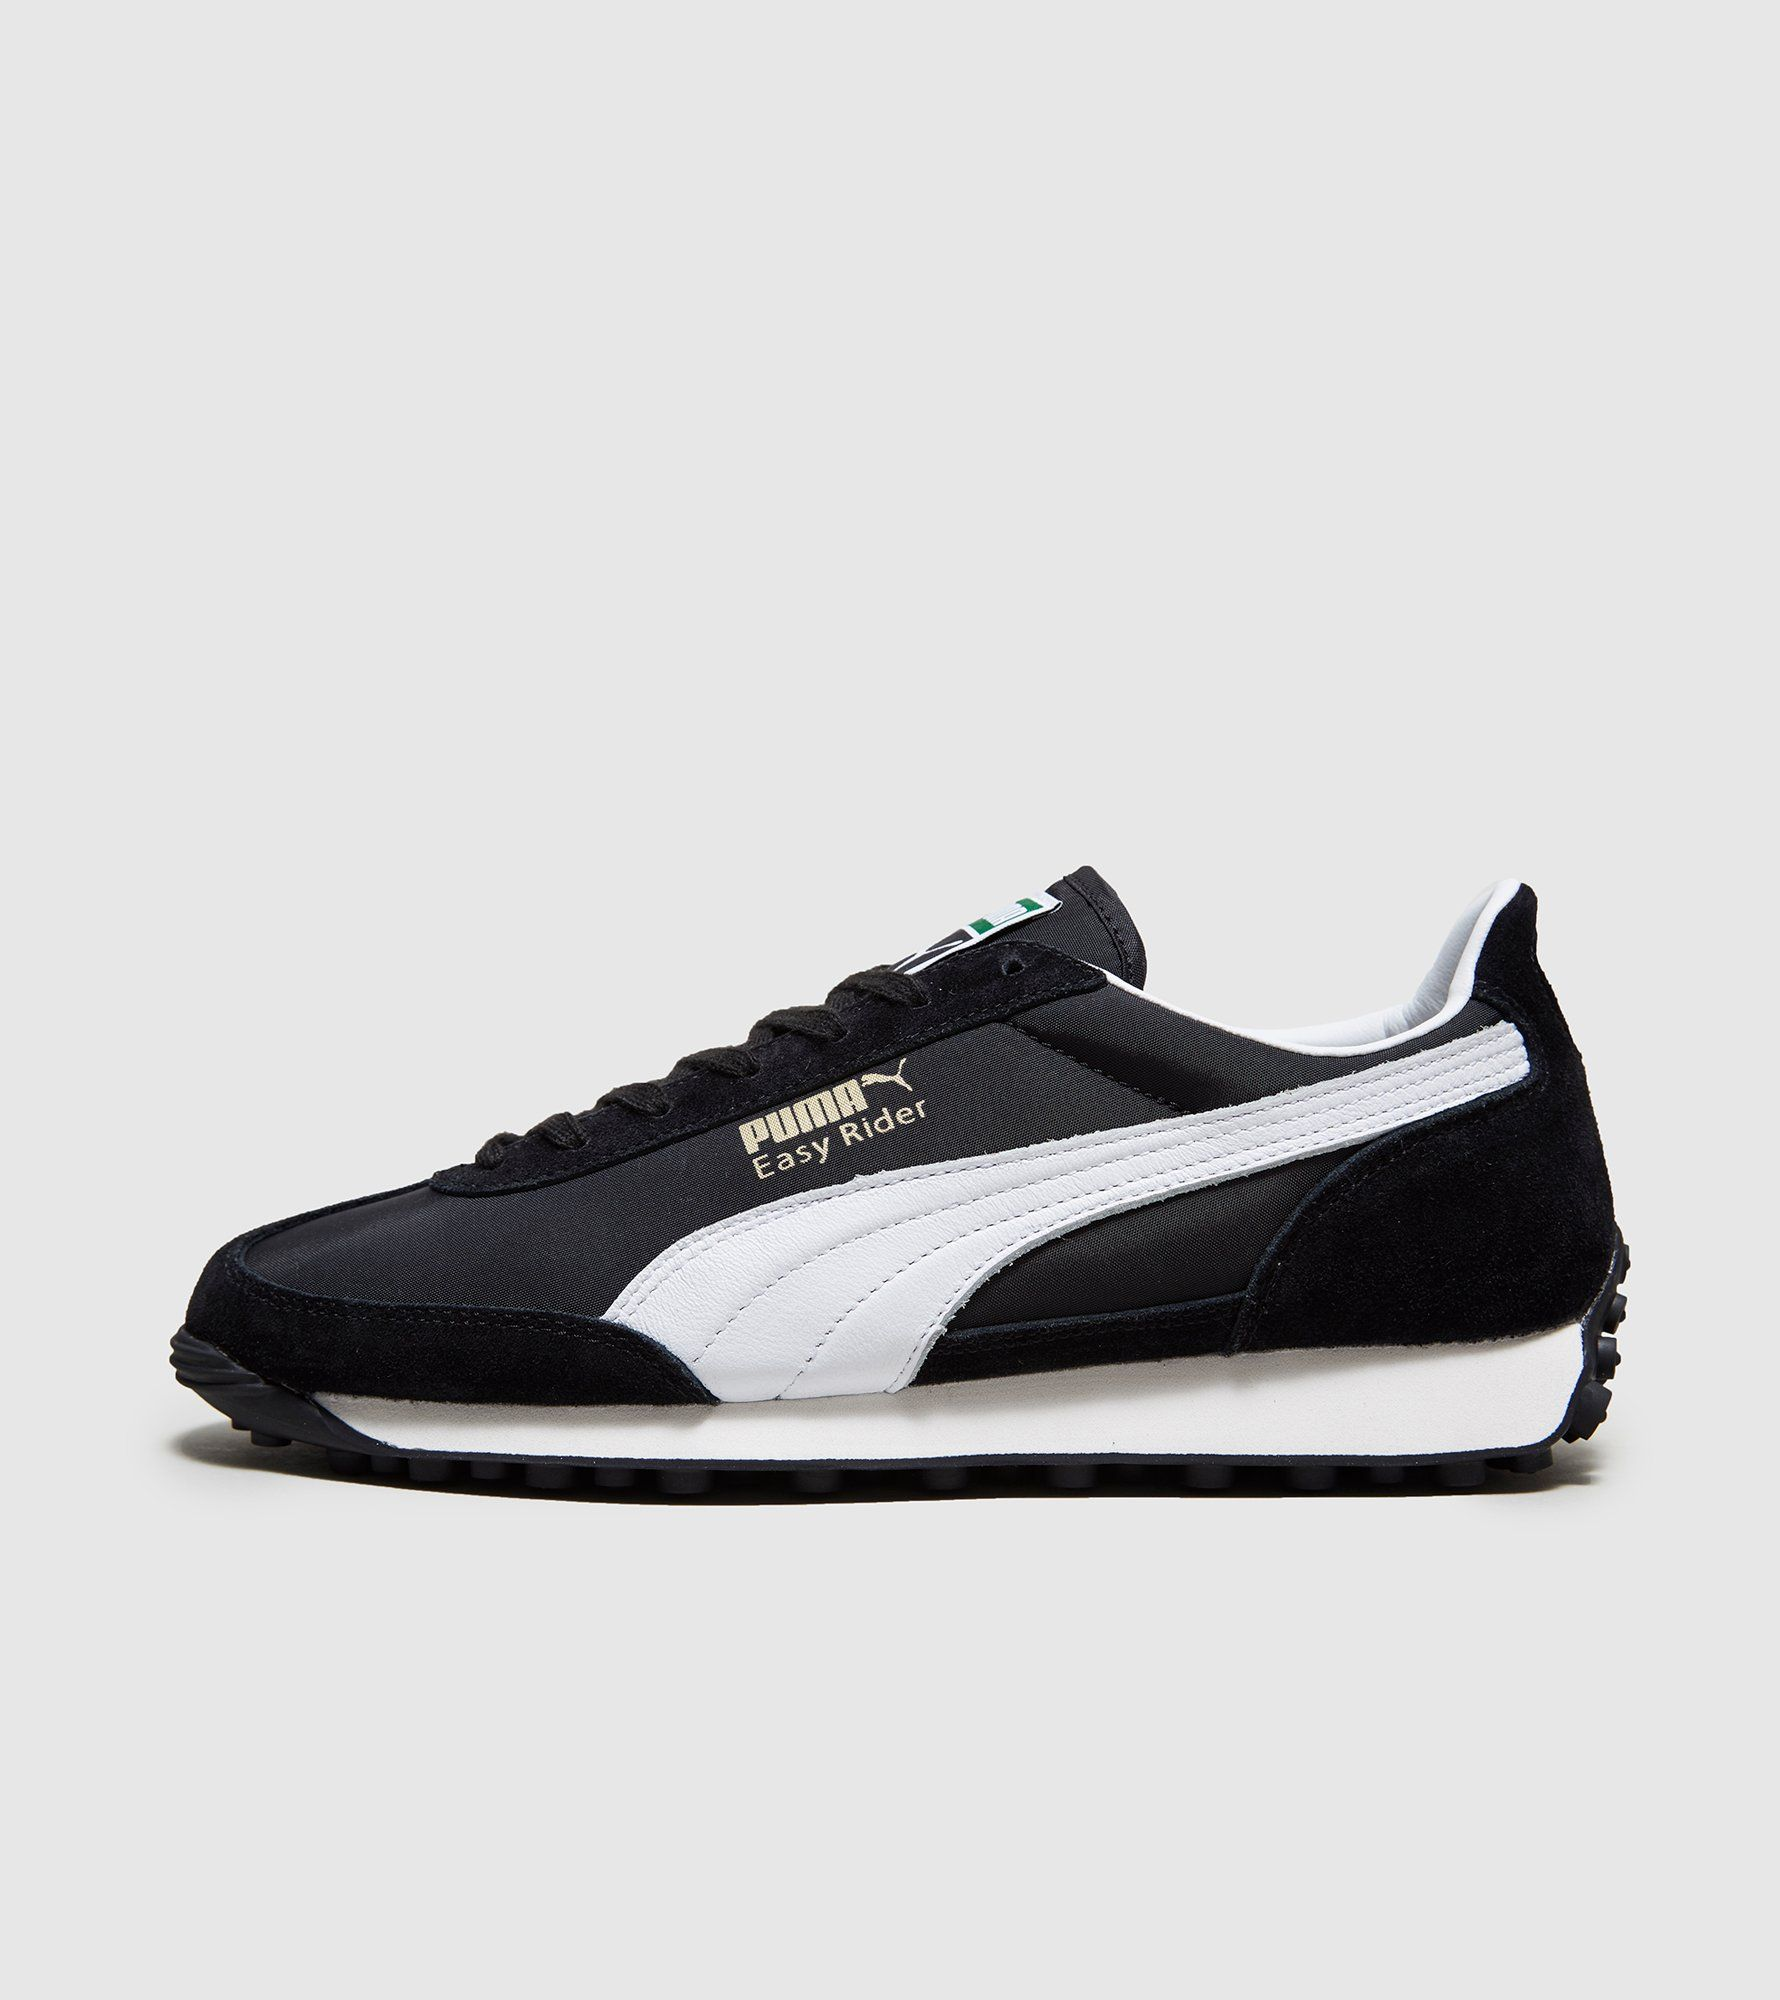 PUMA Easy Rider - size? Exclusive